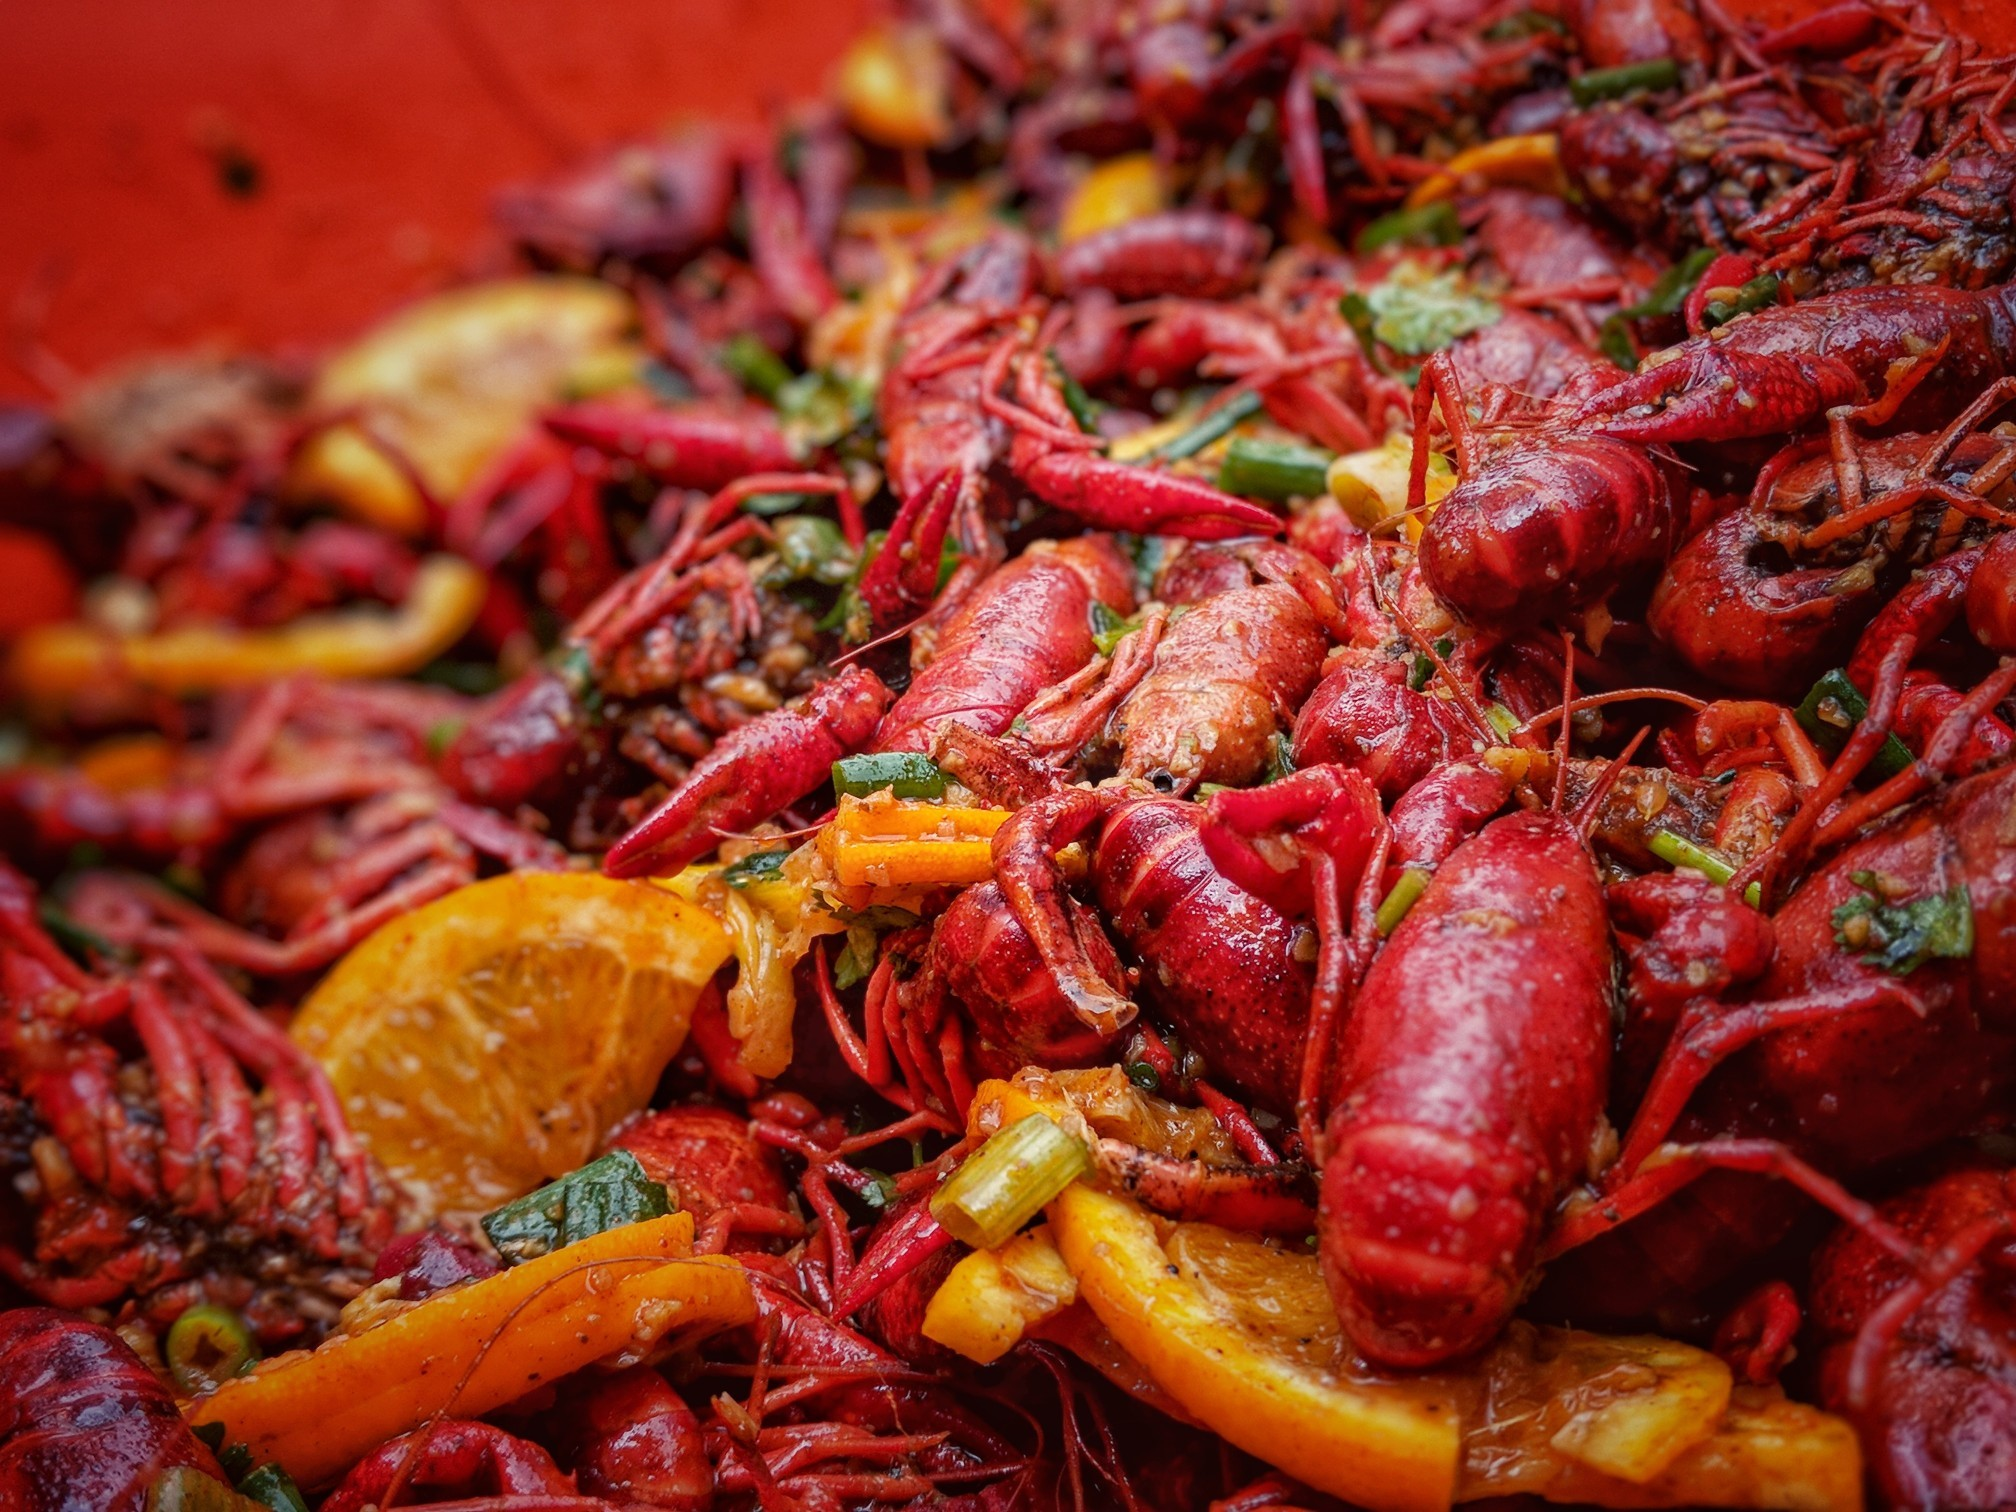 Close-up of cooked crawfish with lots of seasonings